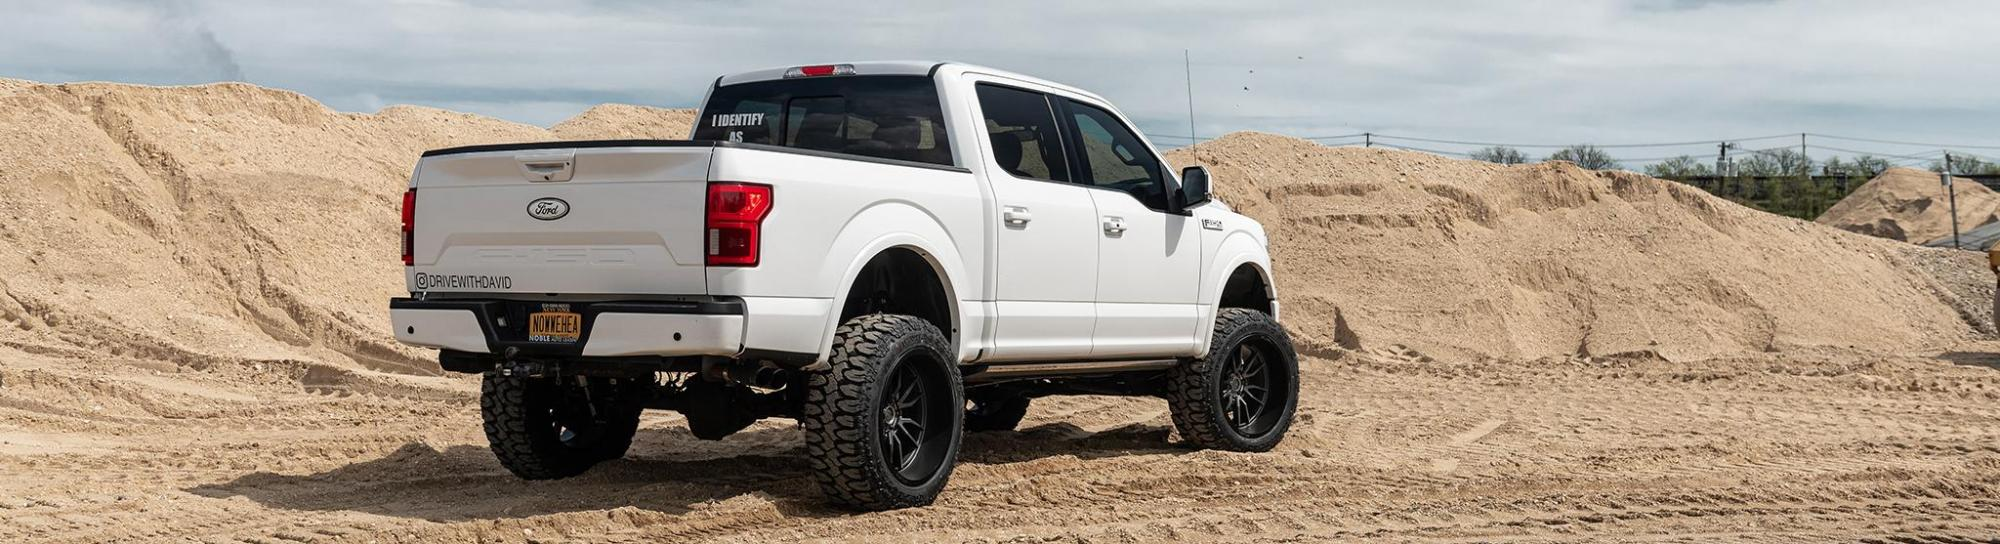 The All New Clash from Fuel Off-Road